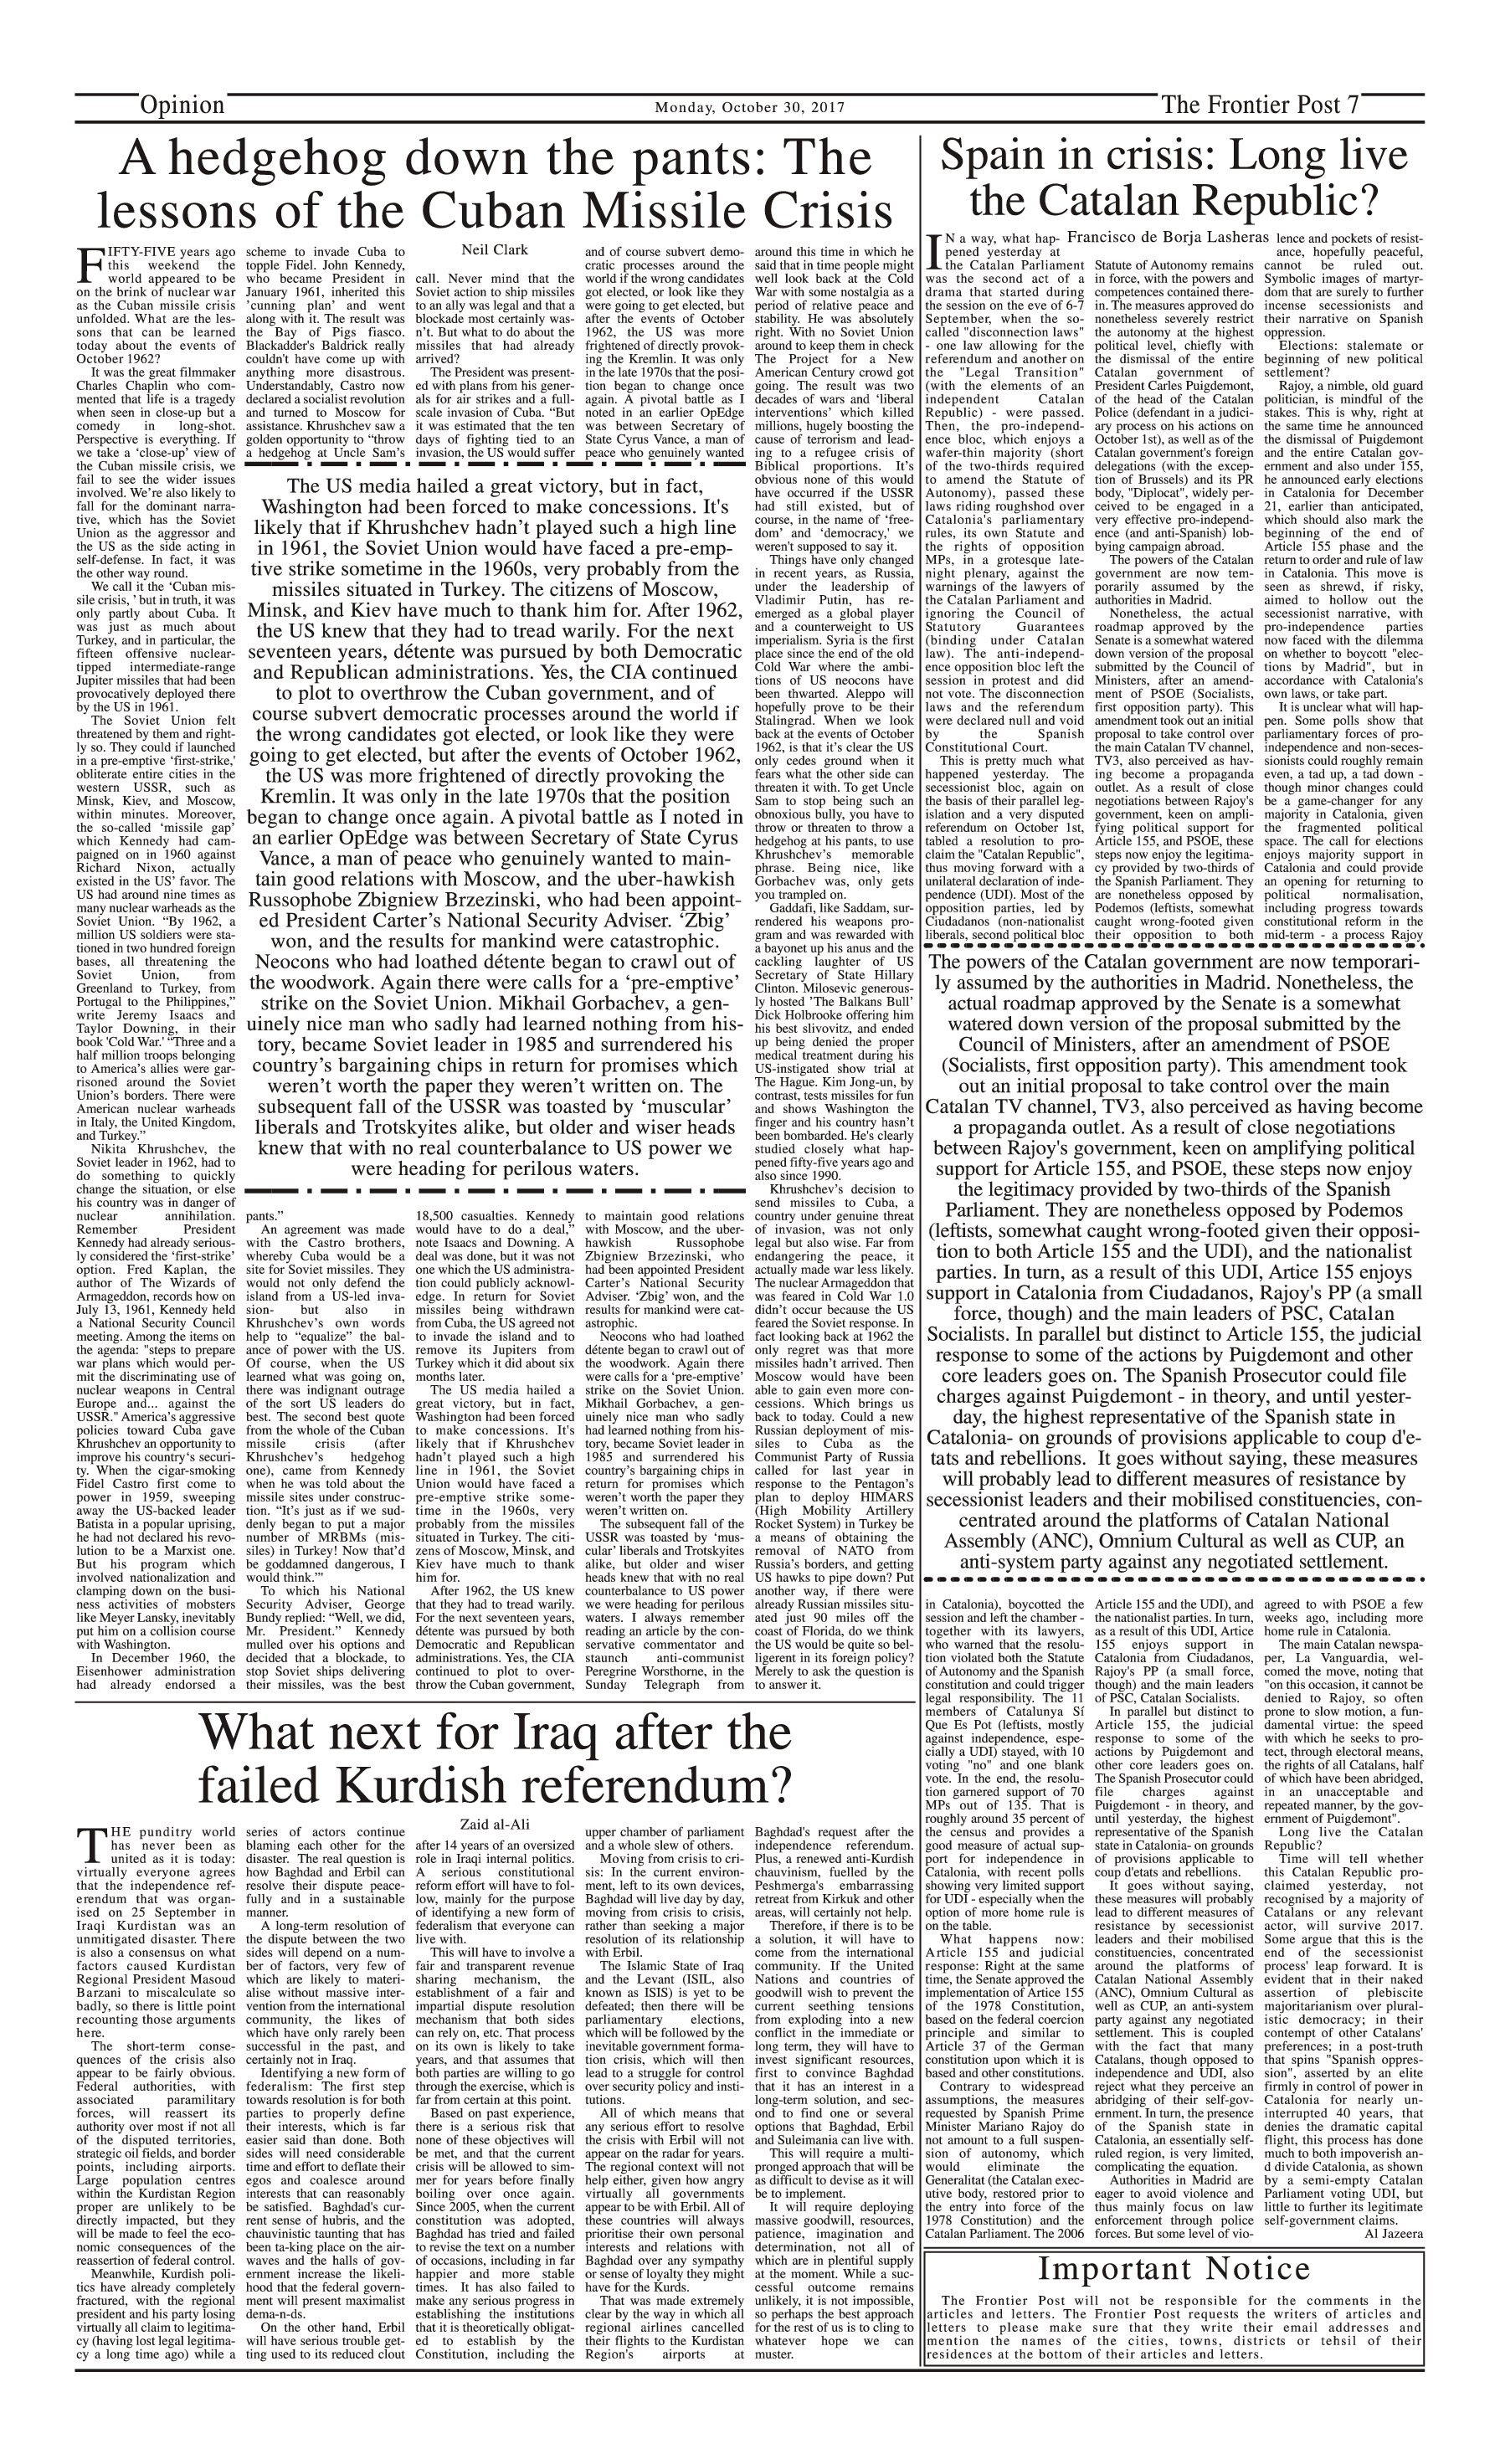 Opinion Page 30-10